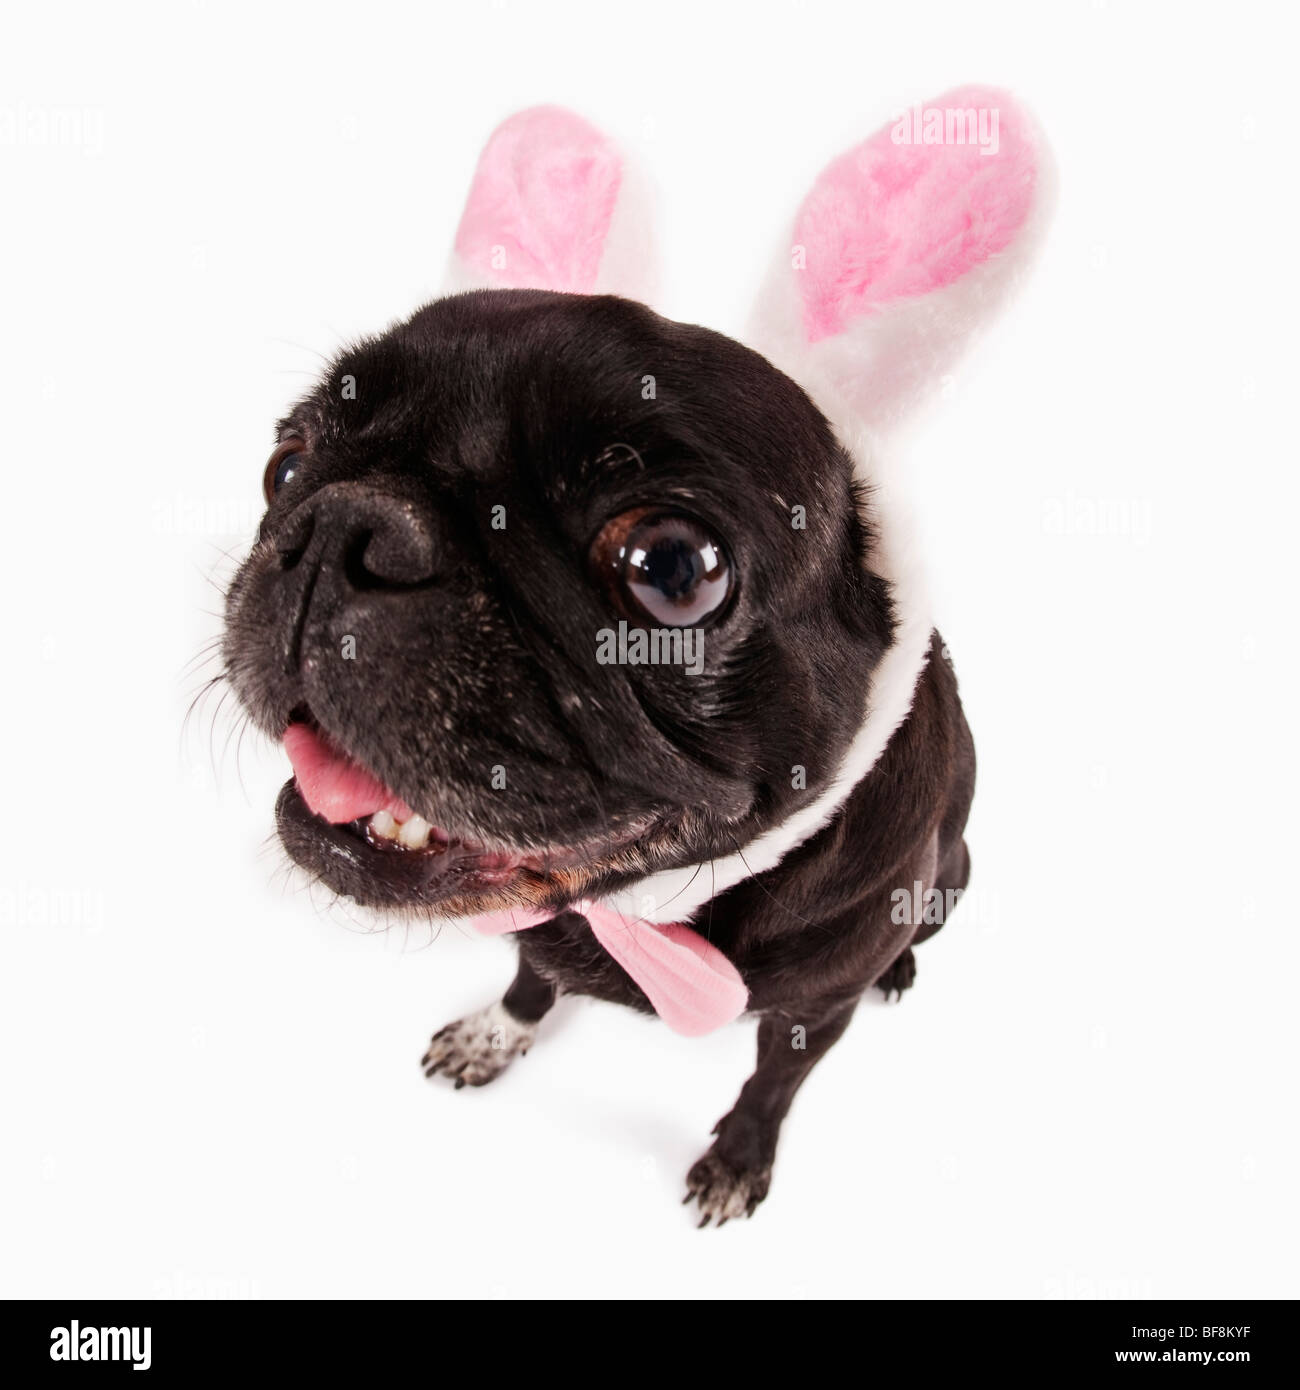 wide angle pug Easter theme. Studio shot against white background. - Stock Image